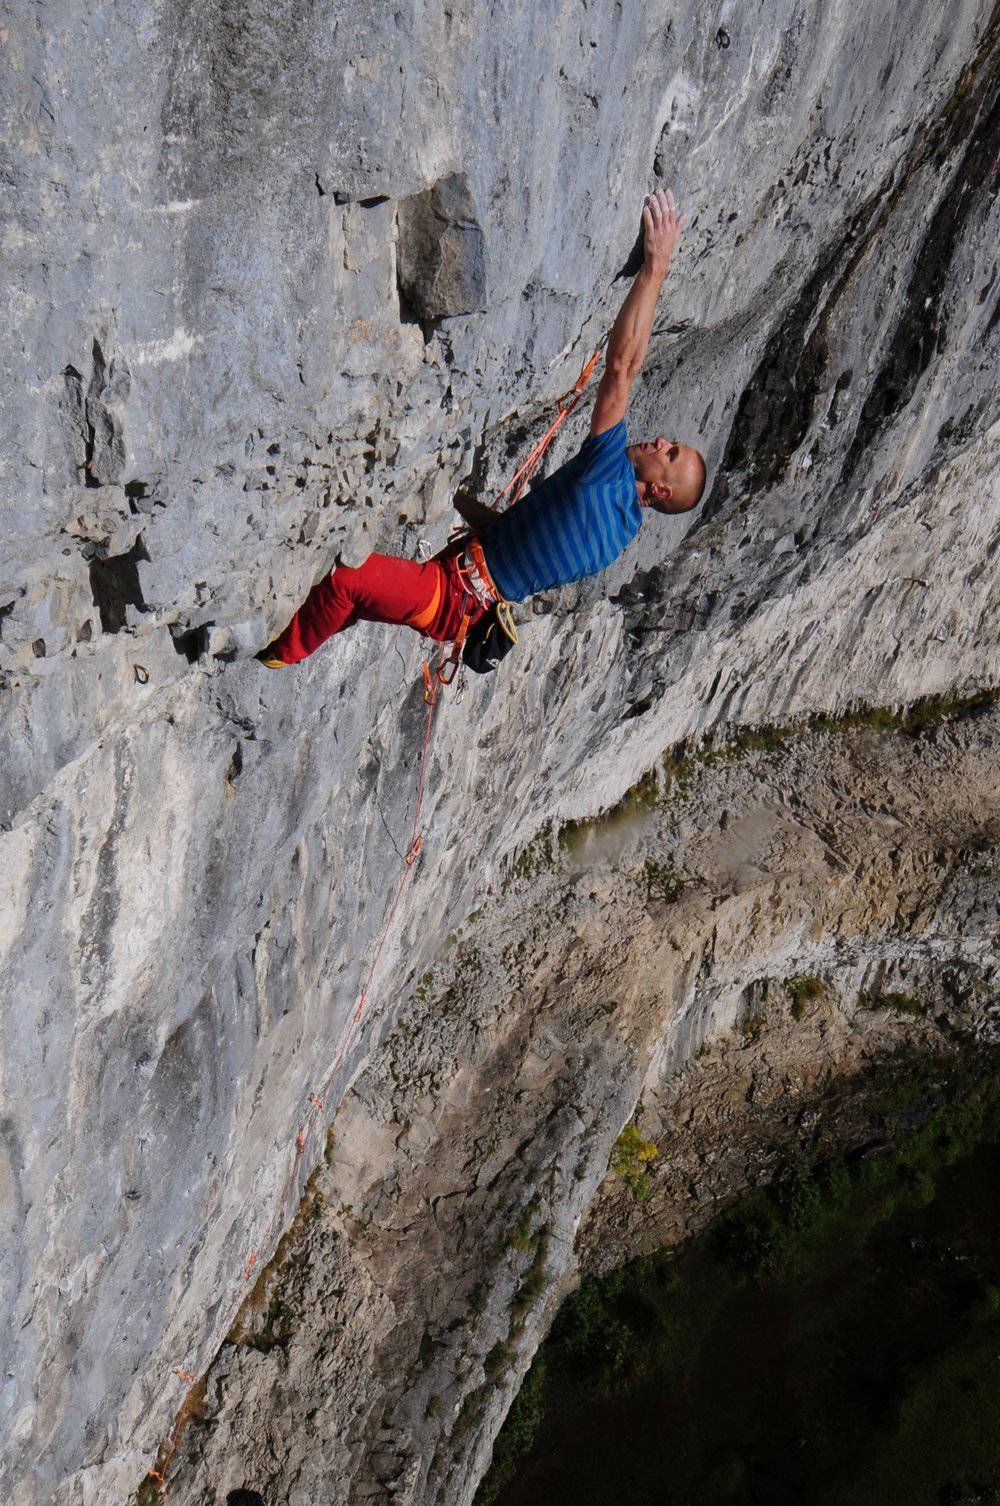 Putting his methods into practice - Neil on the first ascent of Sabotage 8c+, Malham Cove in 2016. Photo: Ian Parnell